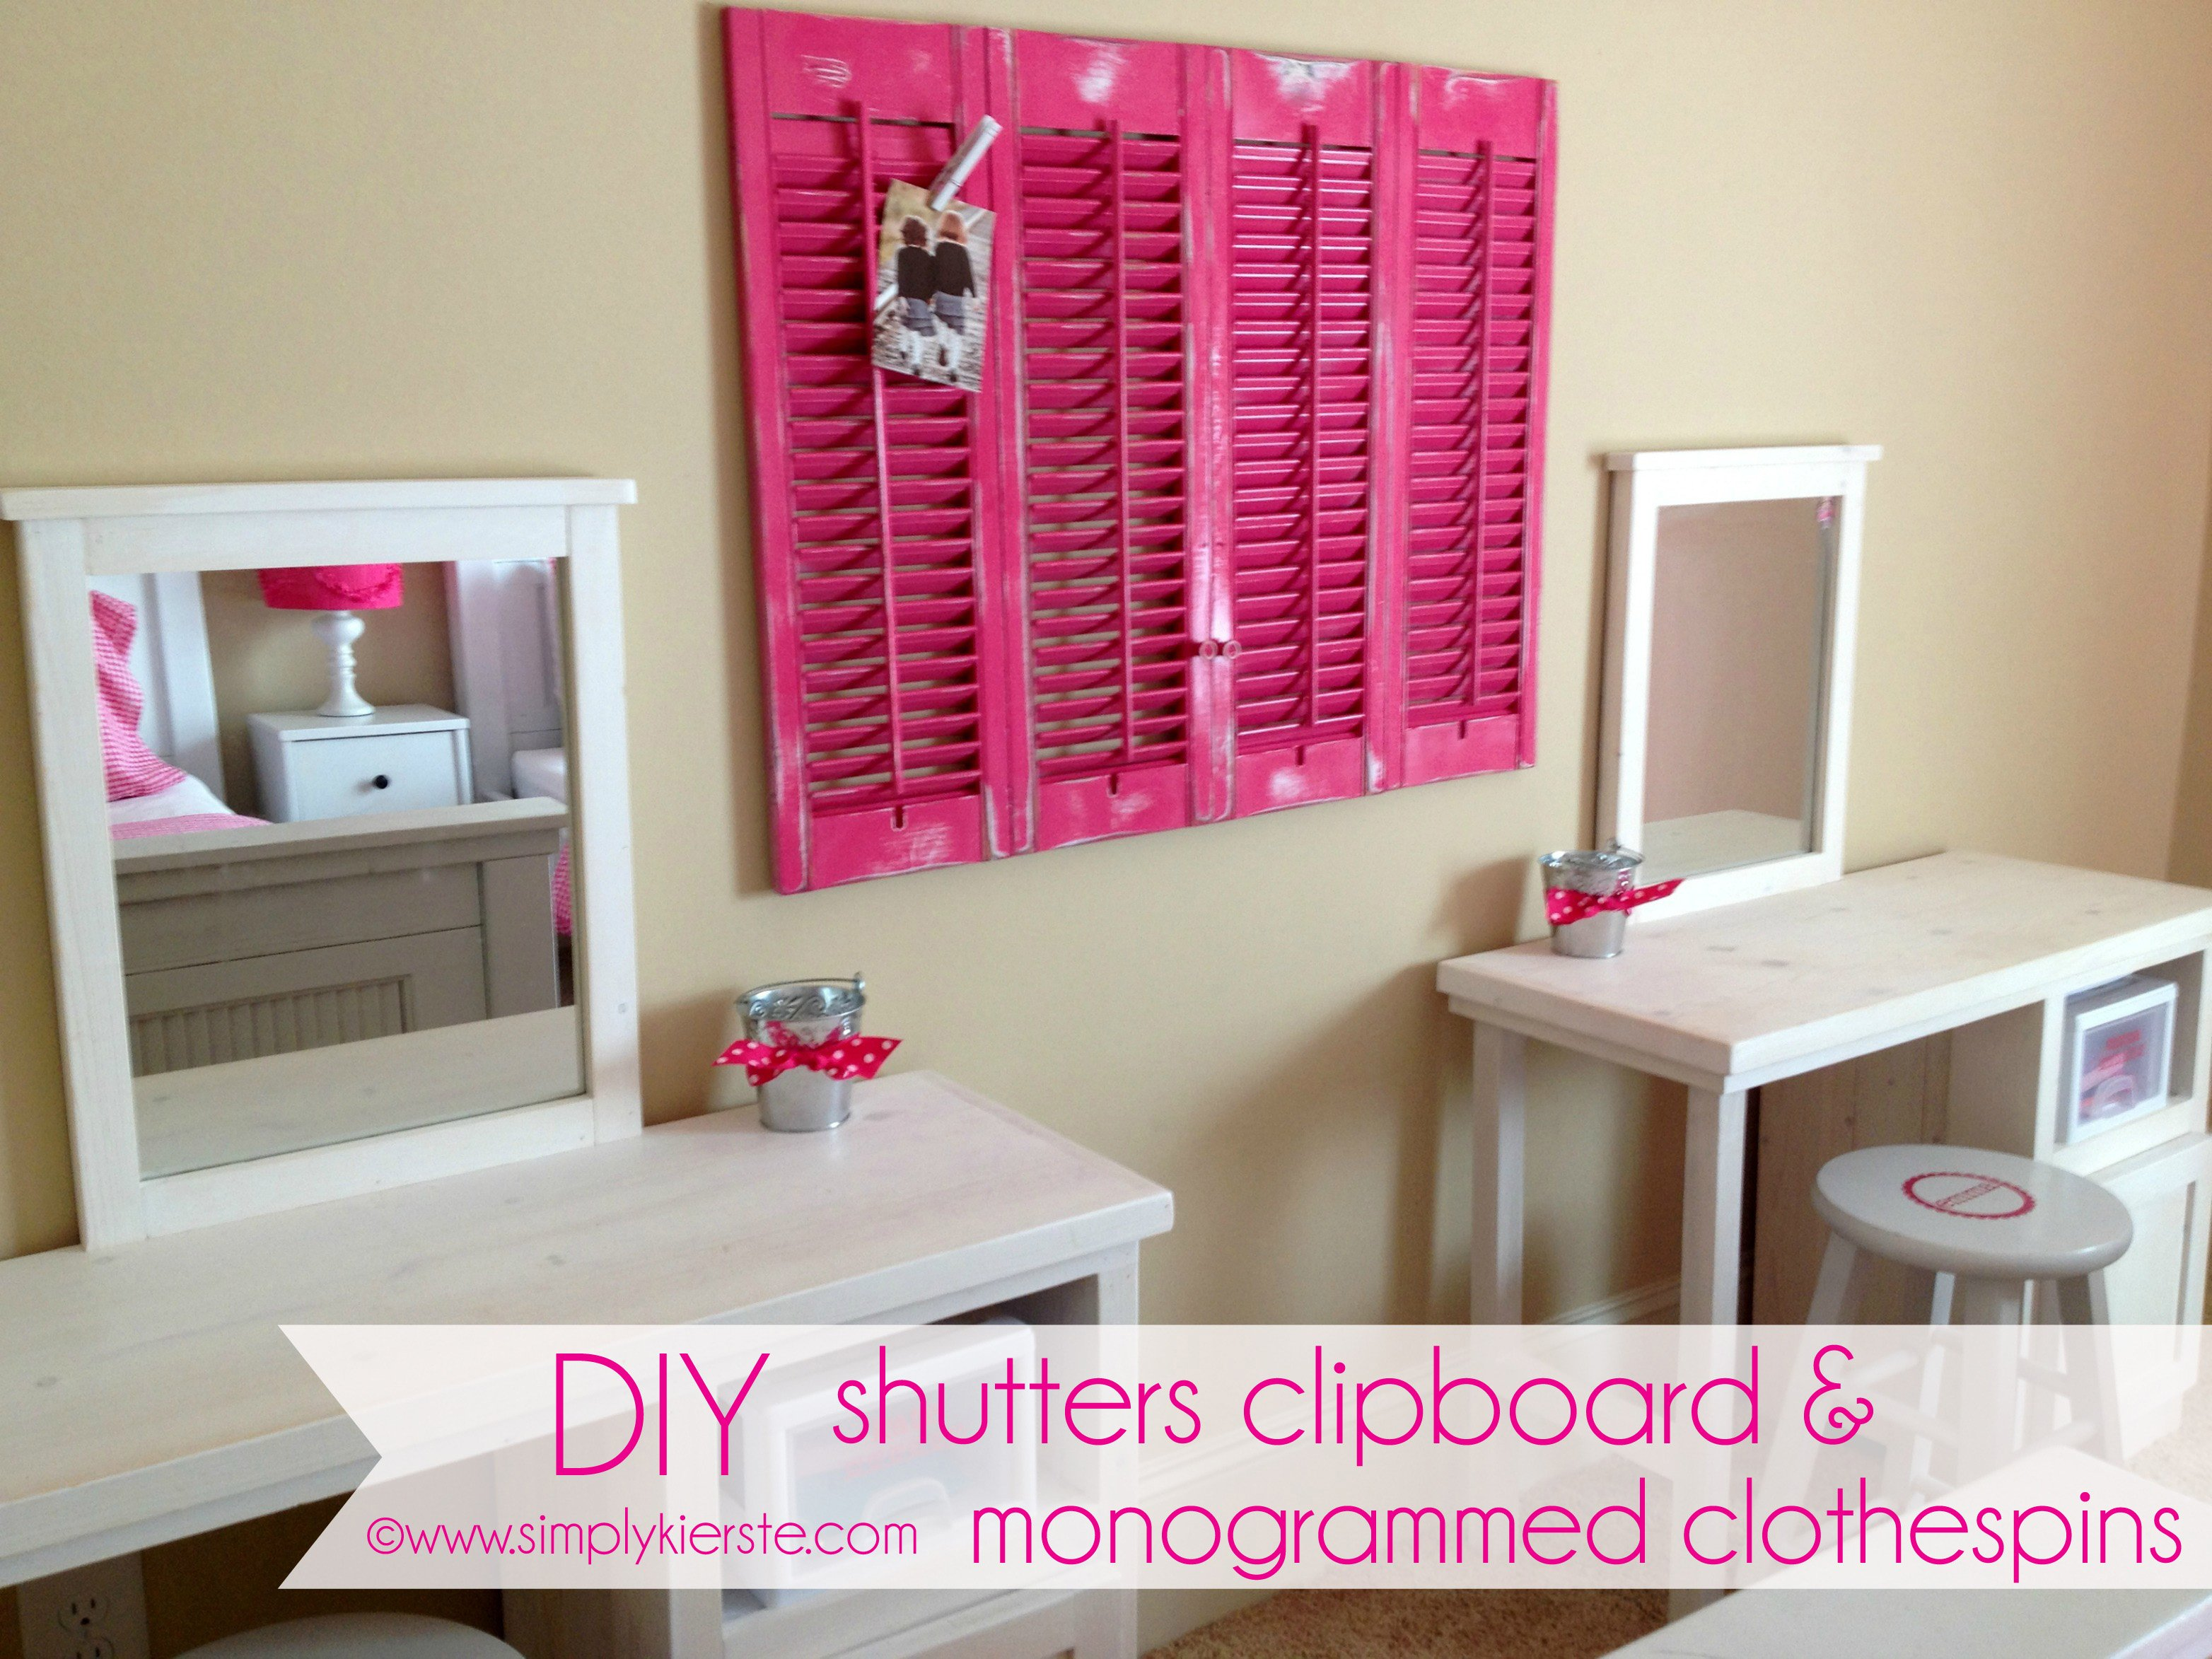 DIY Shutters Clipboard Monogrammed Clothespins